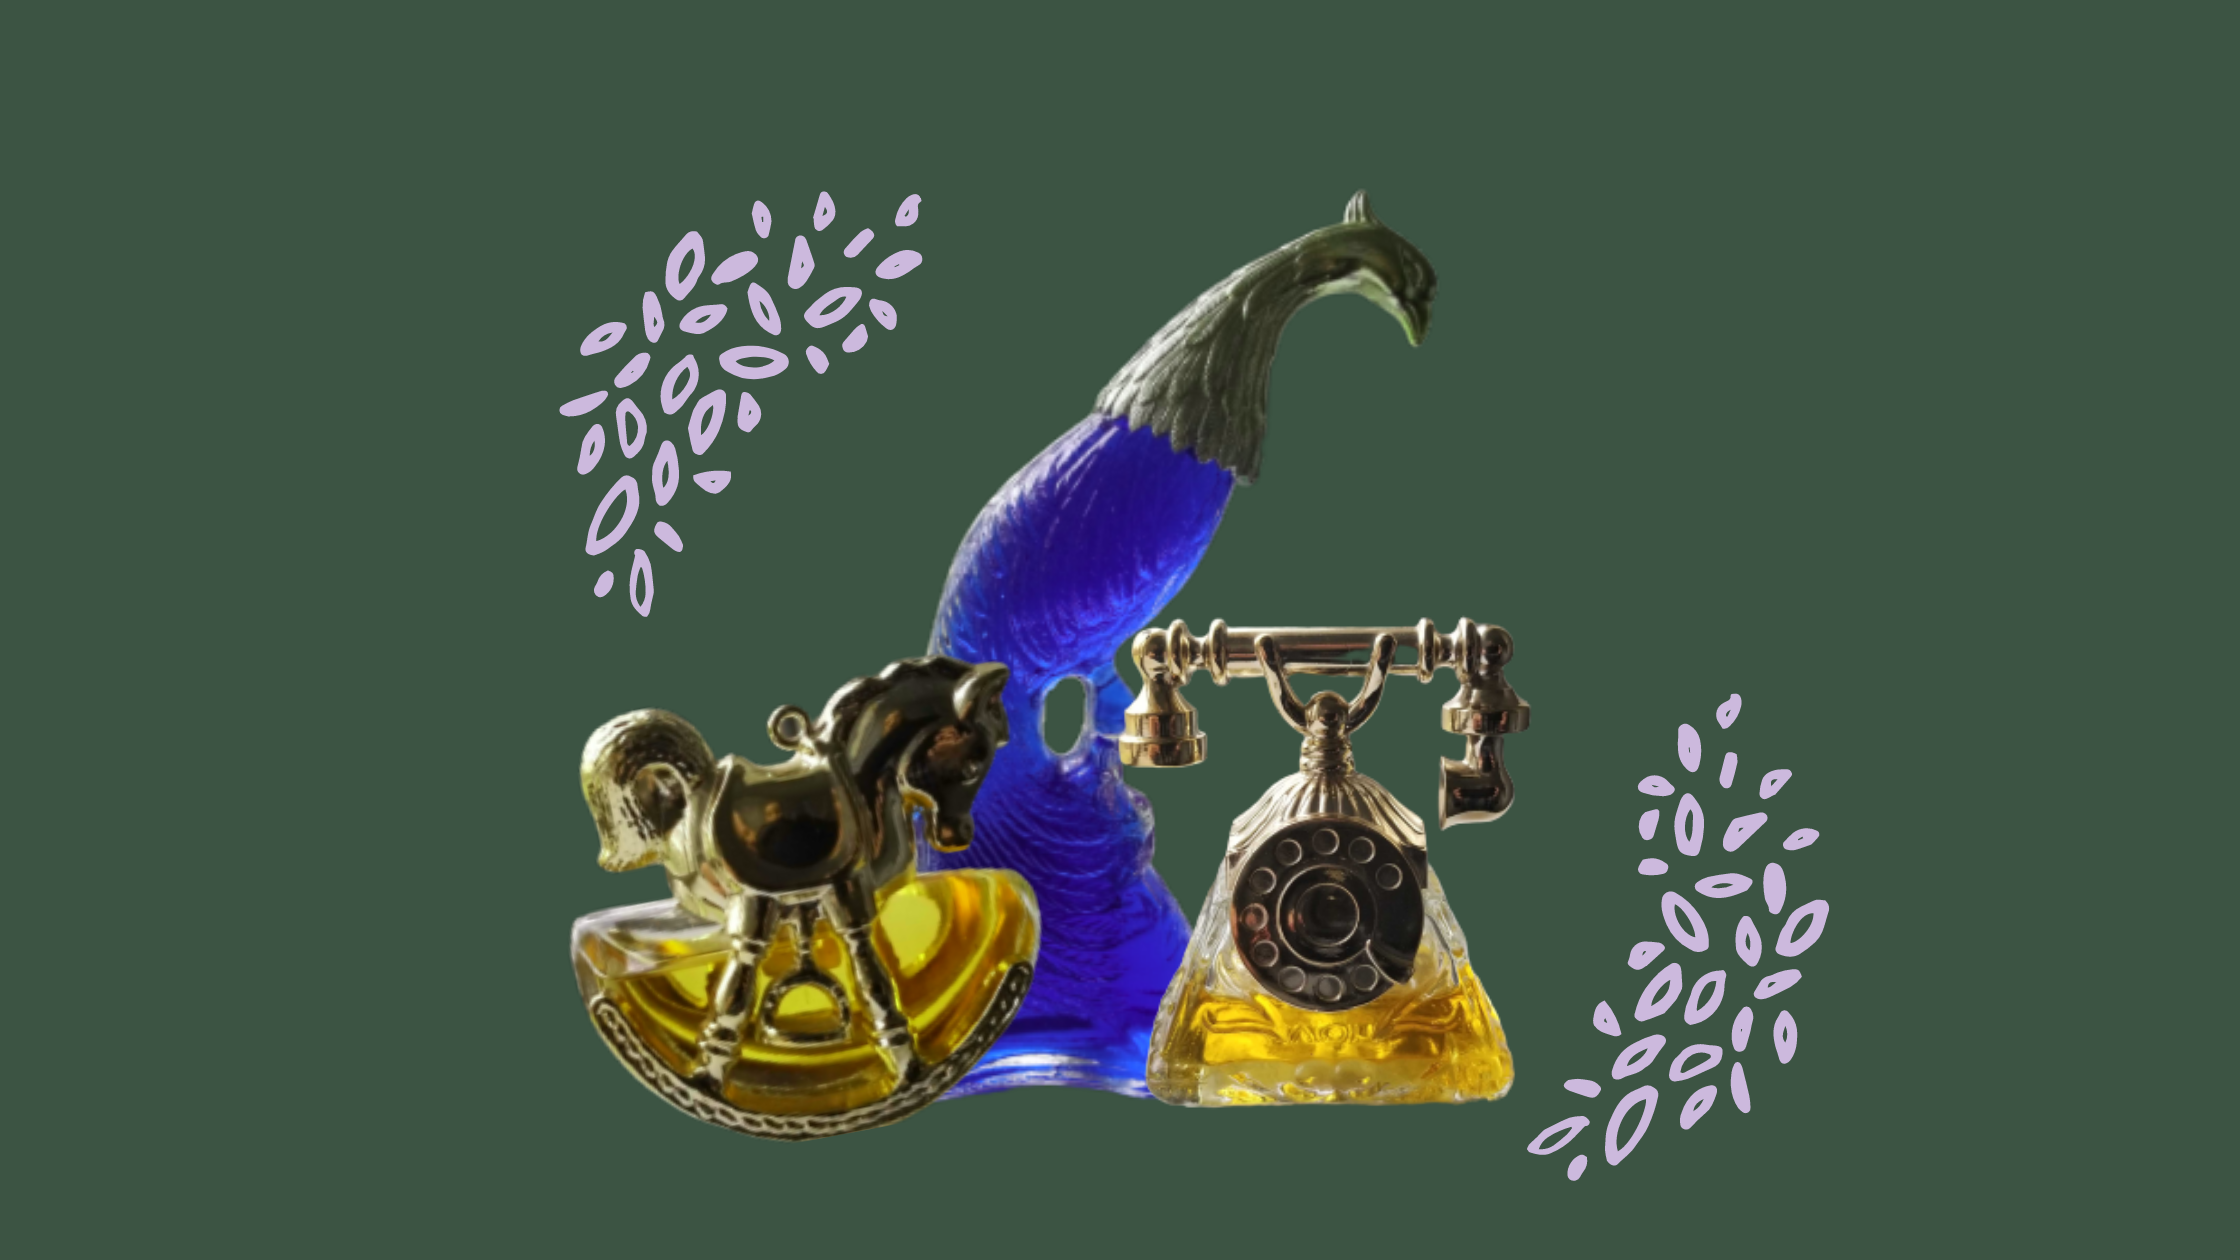 Three Avon novelty perfume bottles, shaped like a peacock, a rocking horse, and a rotary phone.